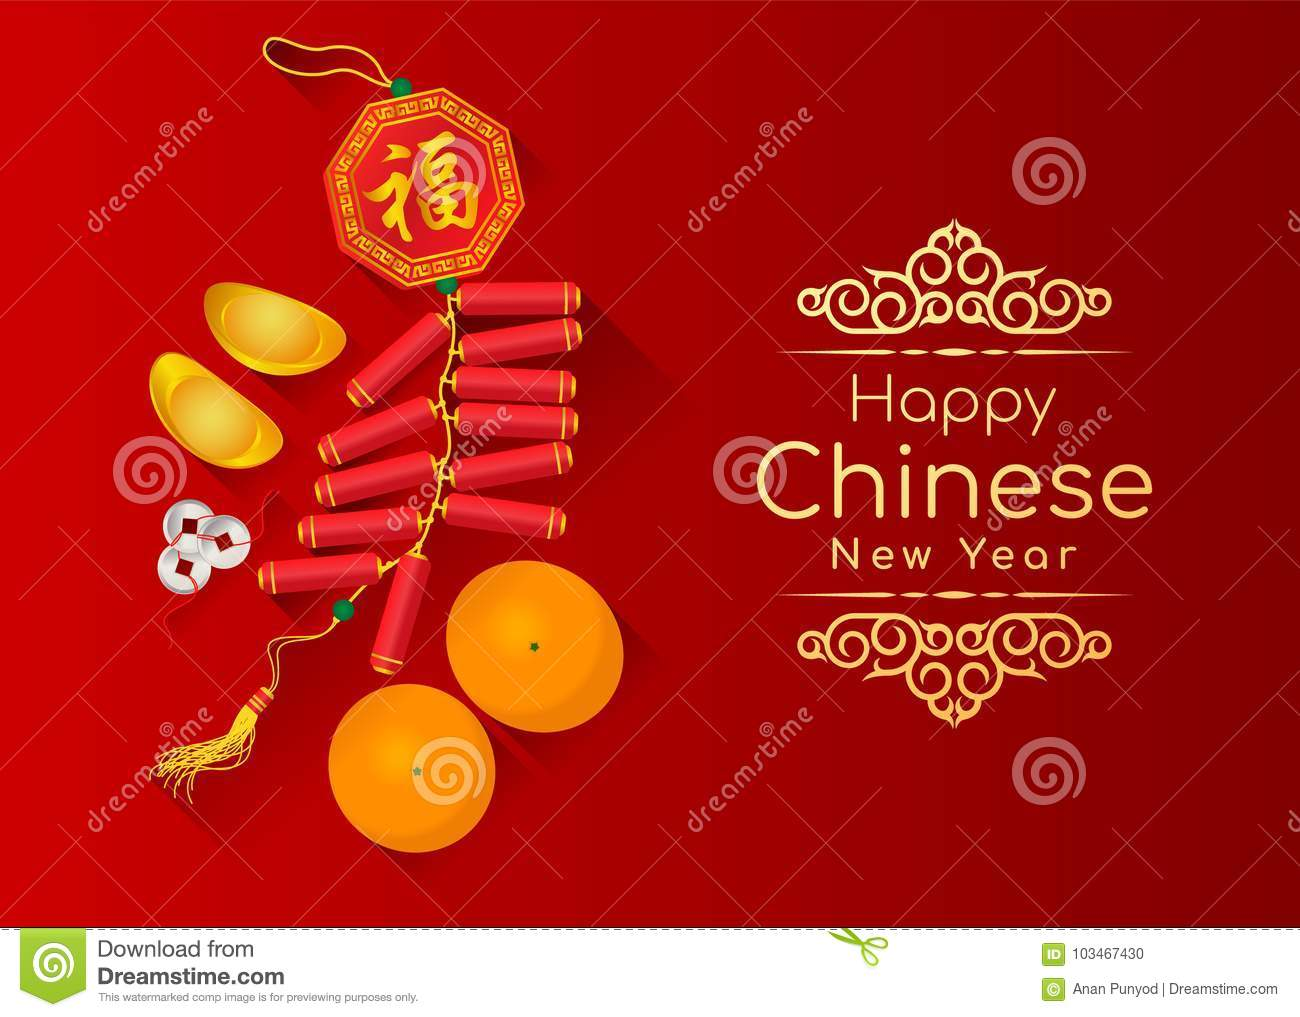 Happy chinese new year card with the sacred is gold money orange happy chinese new year card with the sacred is gold money orange fruit and firecracker chinese word mean blessing on red backg kristyandbryce Choice Image